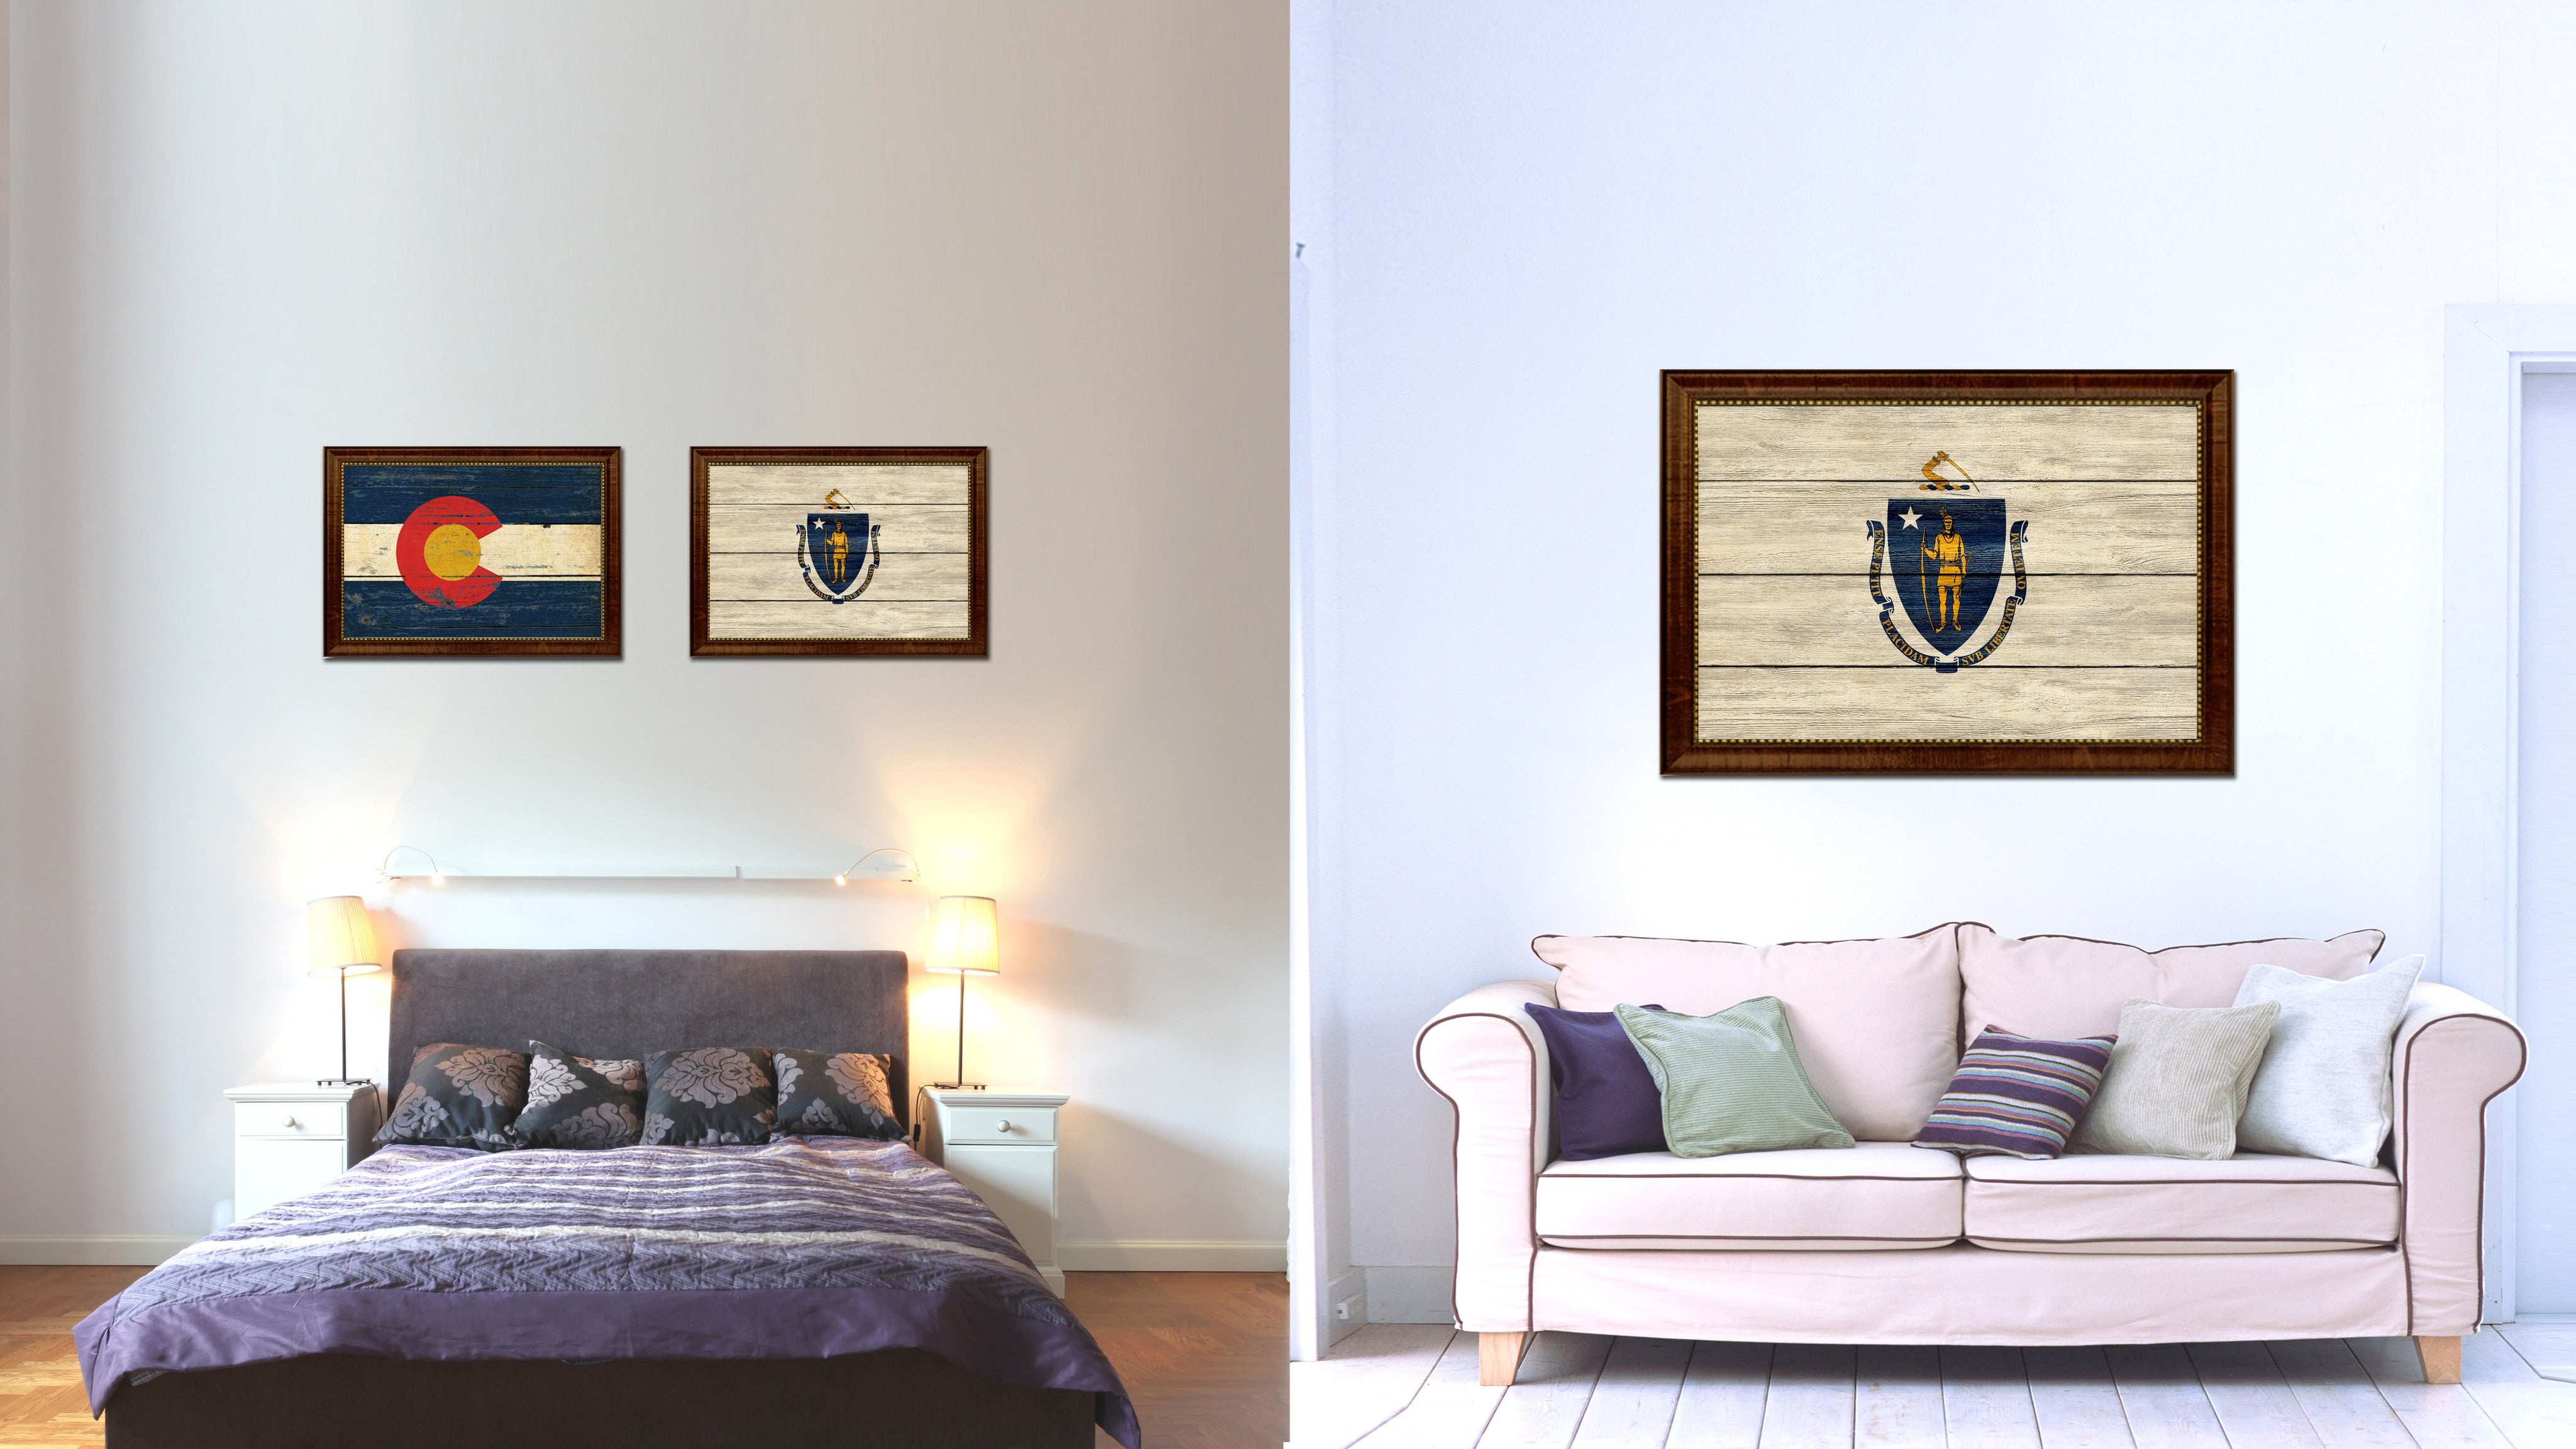 Massachusetts State Flag Texture Canvas Print with Brown Picture Frame Gifts Home Decor Wall Art Collectible Decoration